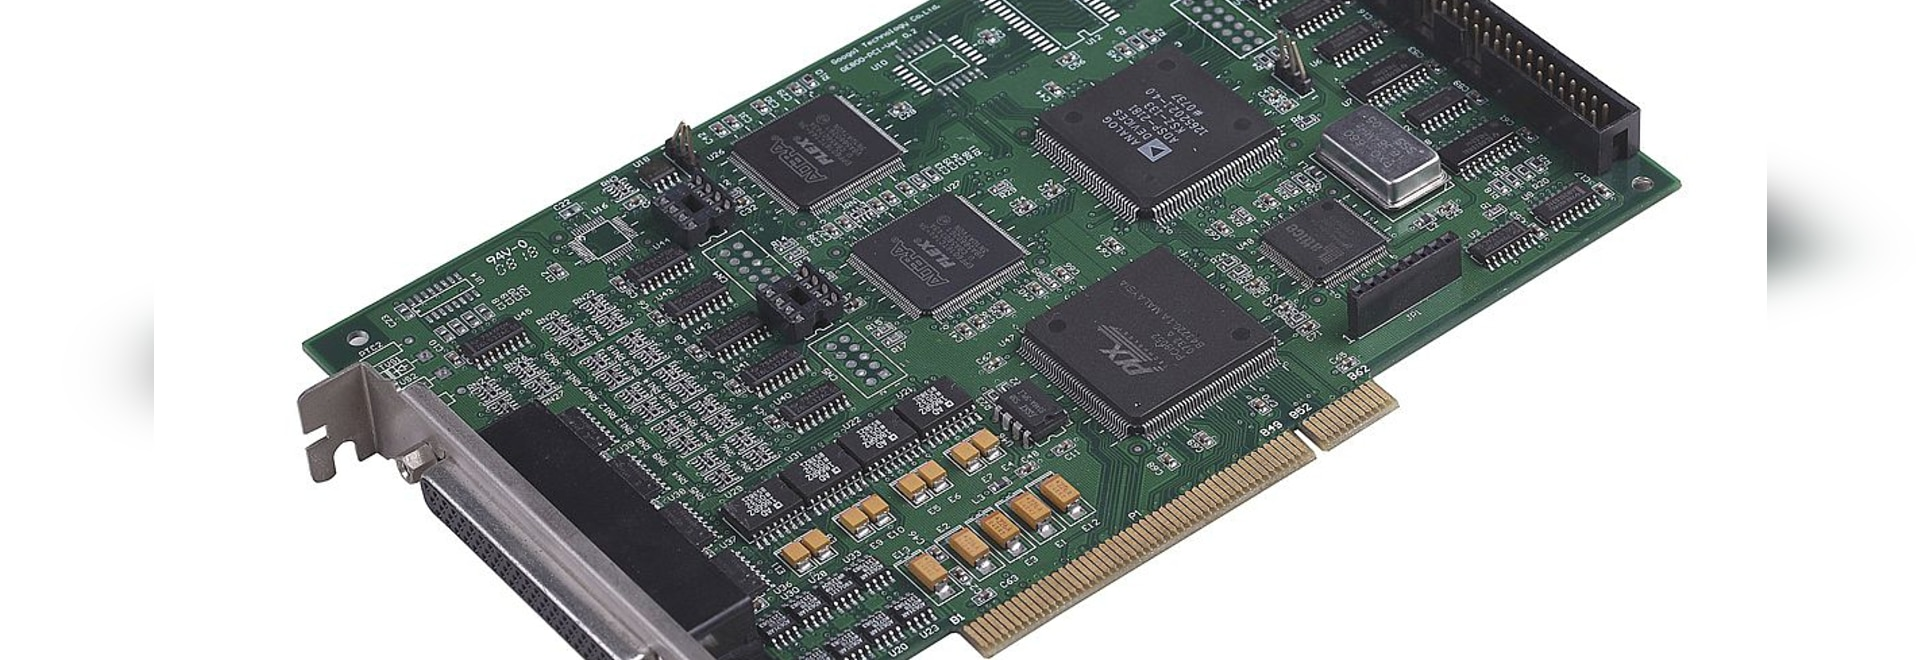 NEW : multi-axis motion control card GE Series => HIGH performance, multipurpose & LOW cost !